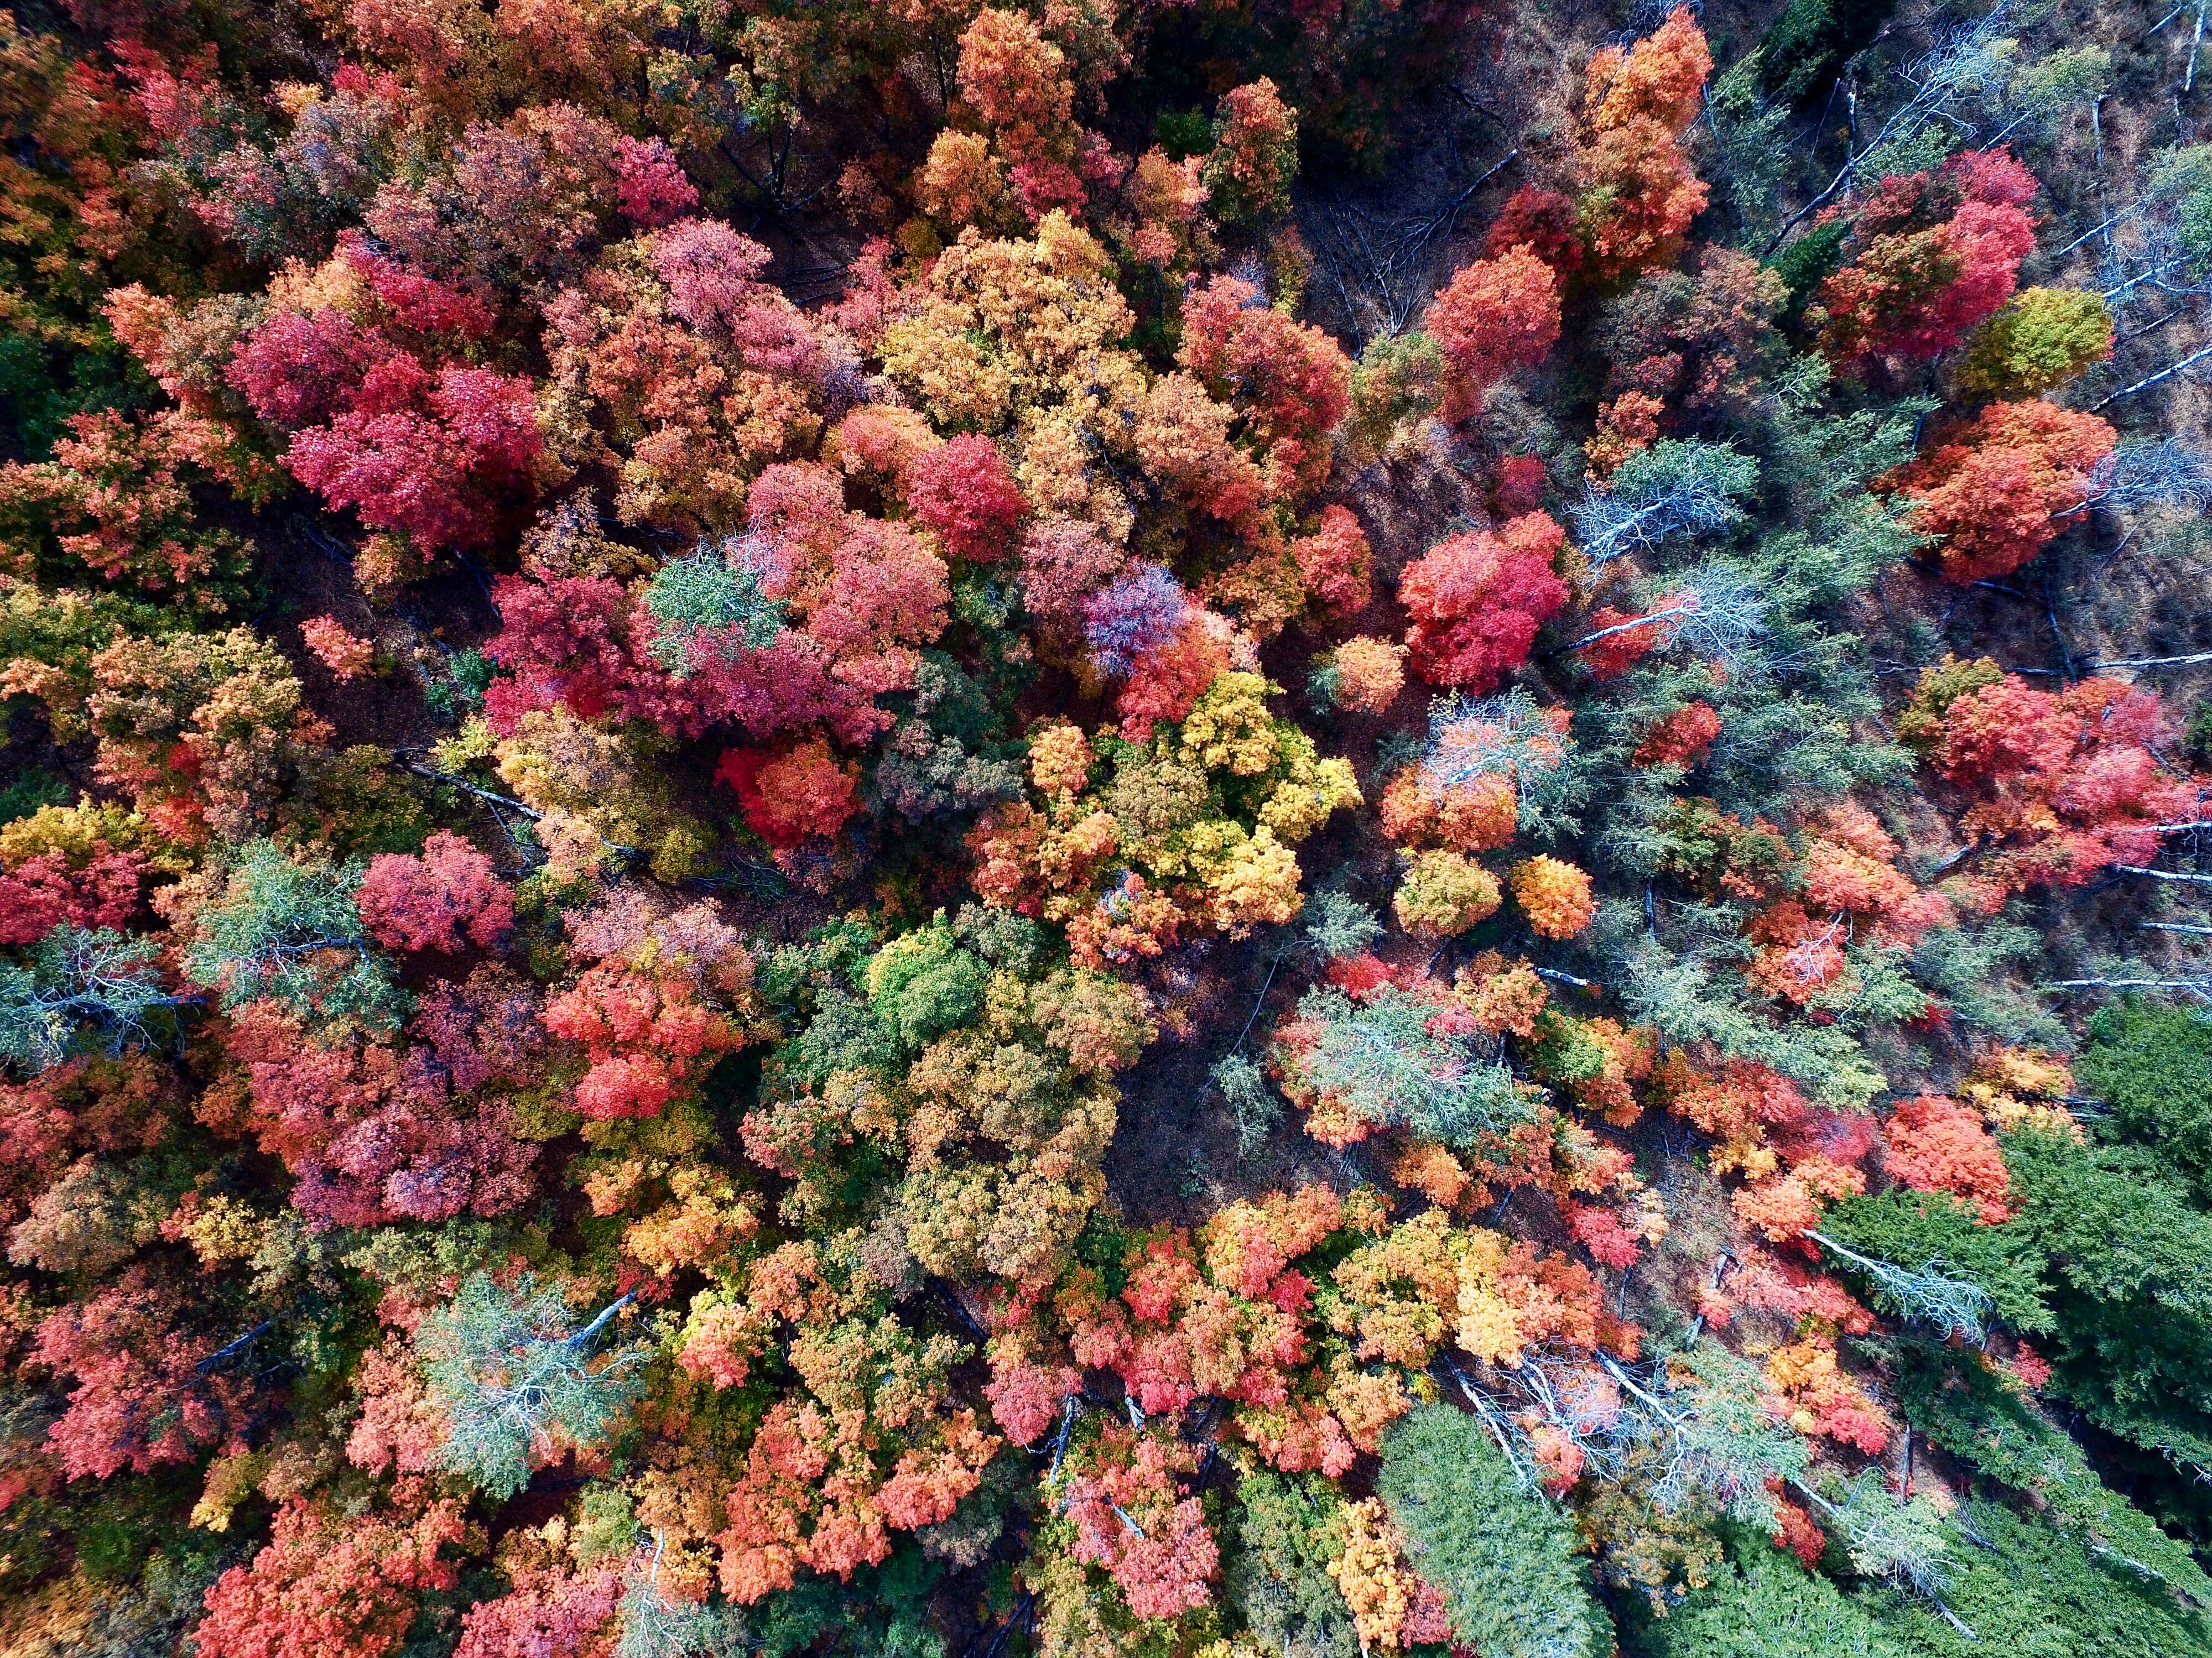 Drone shot of a forest in autumn colors